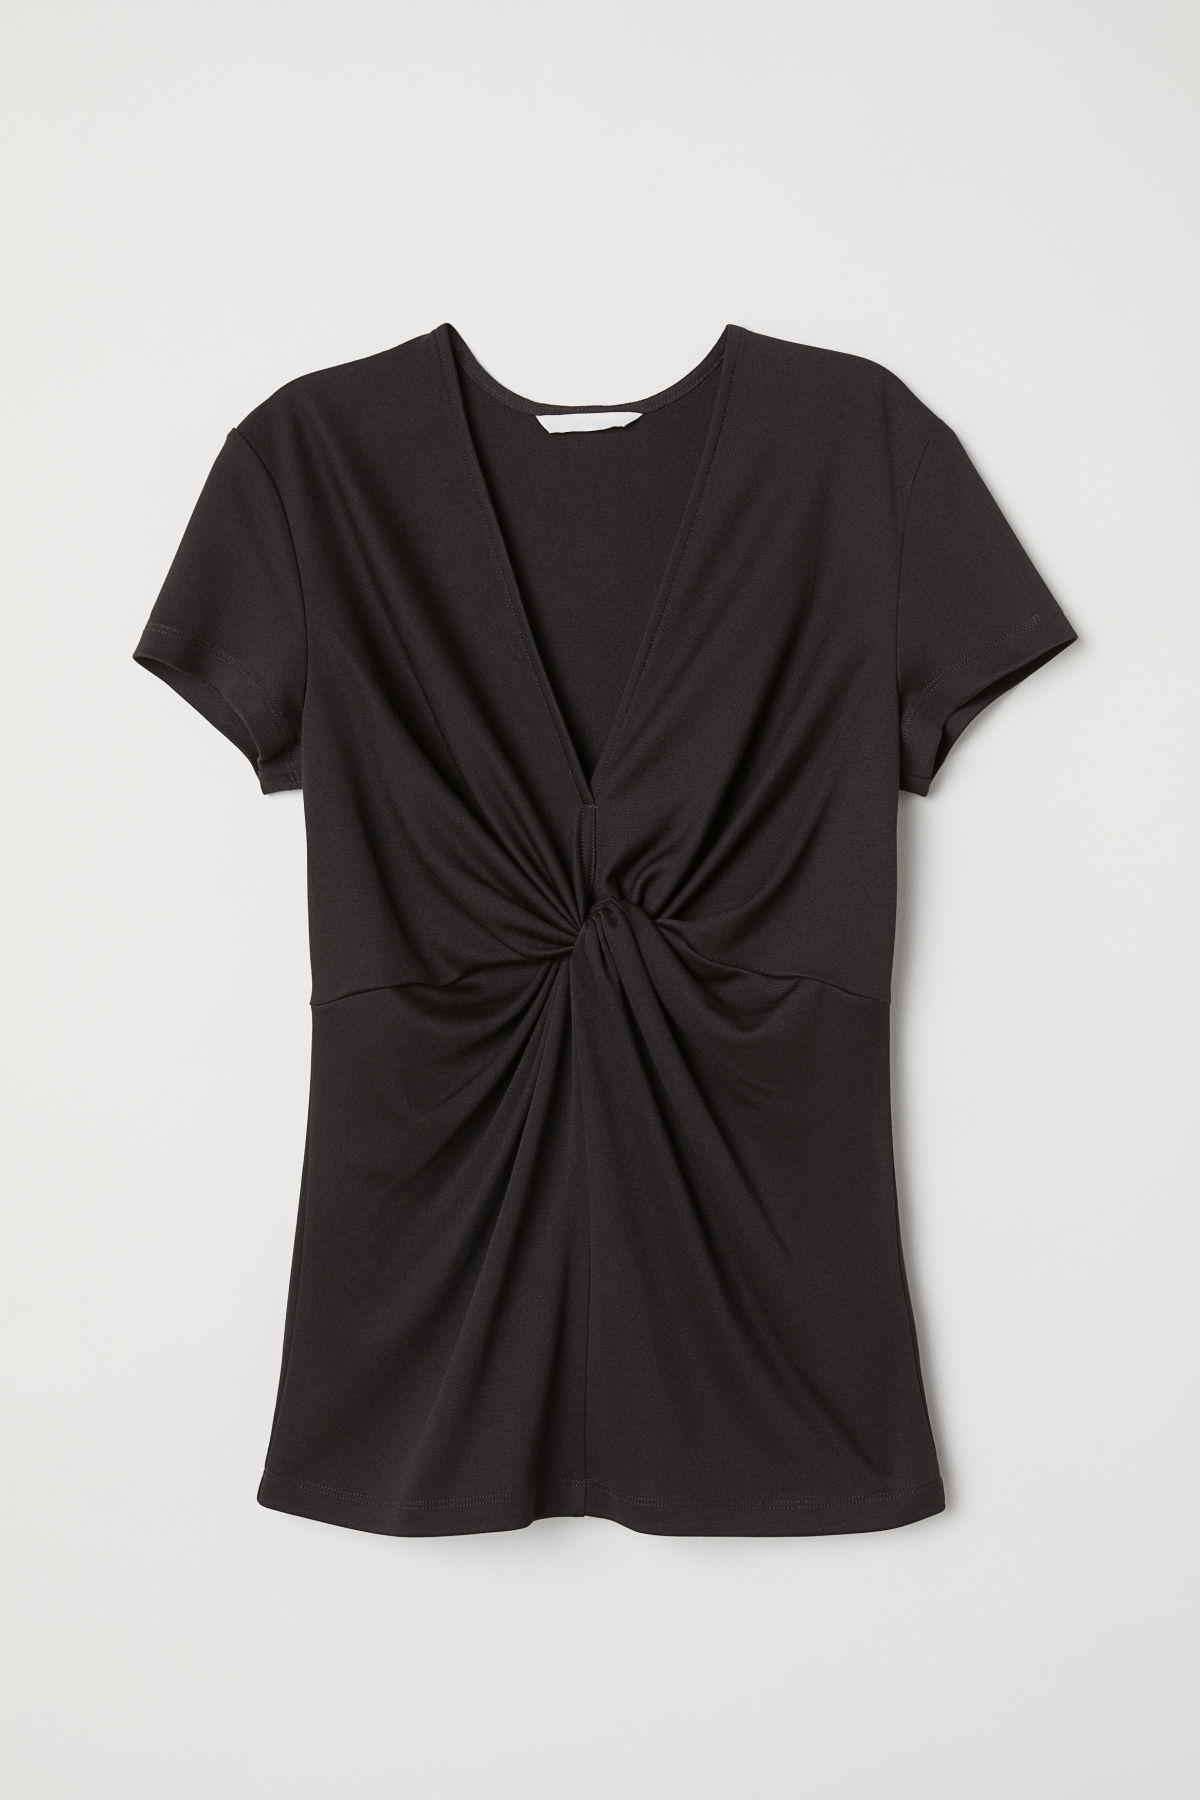 knot detail top